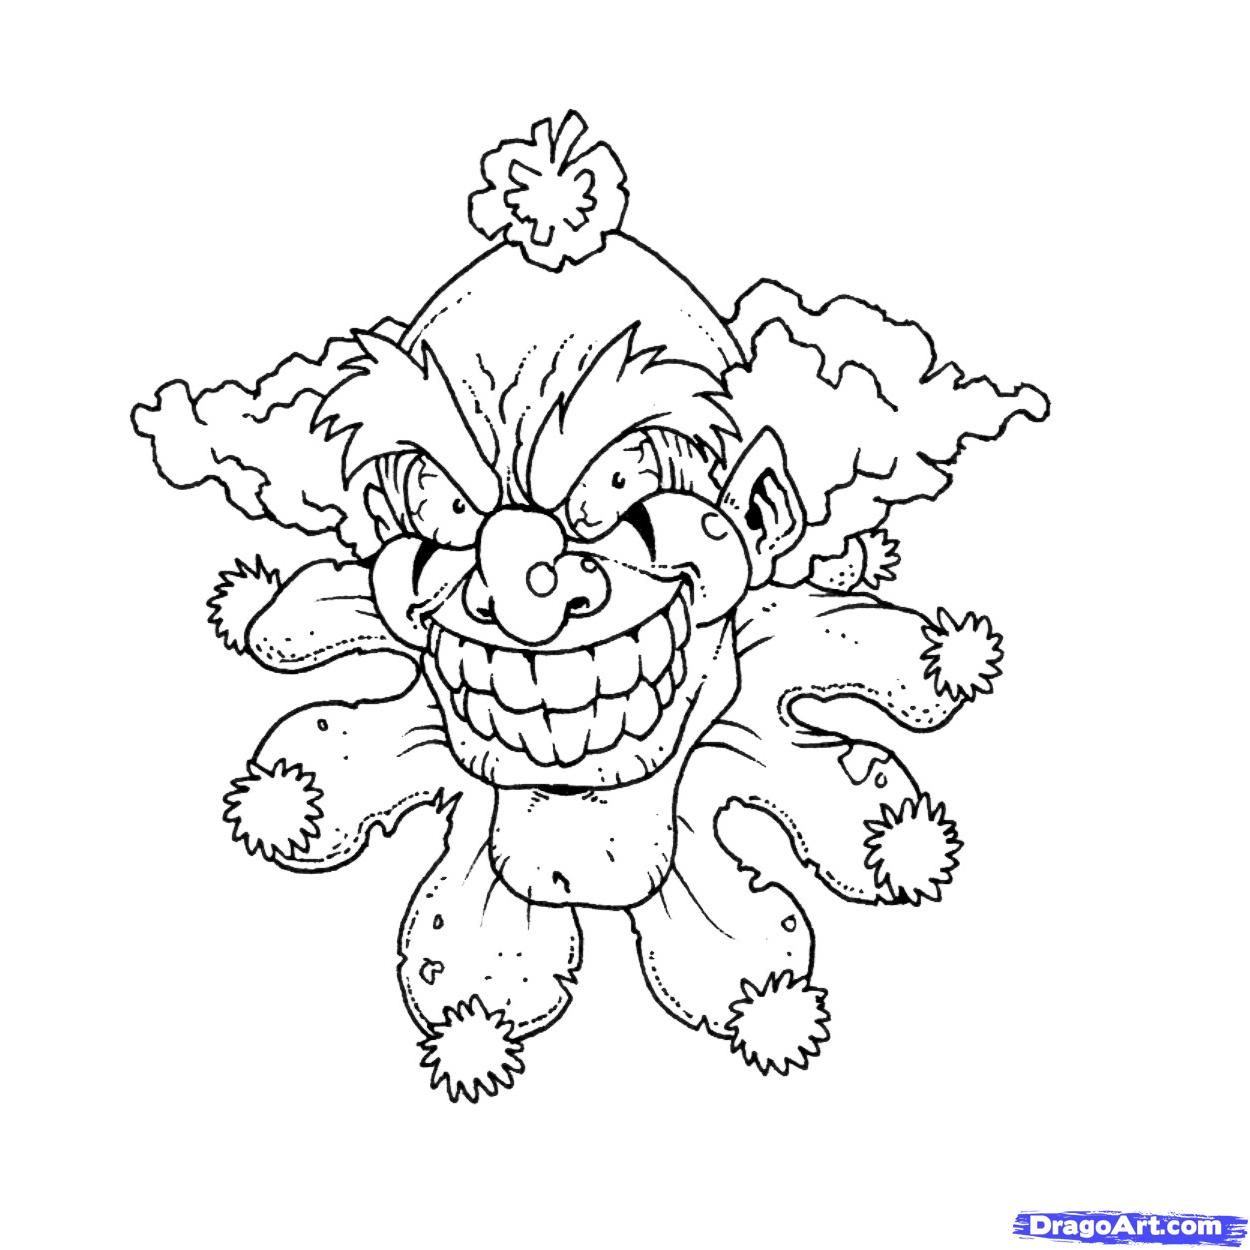 tons here  Adult colouring  Pinterest  Scary clowns Scary and